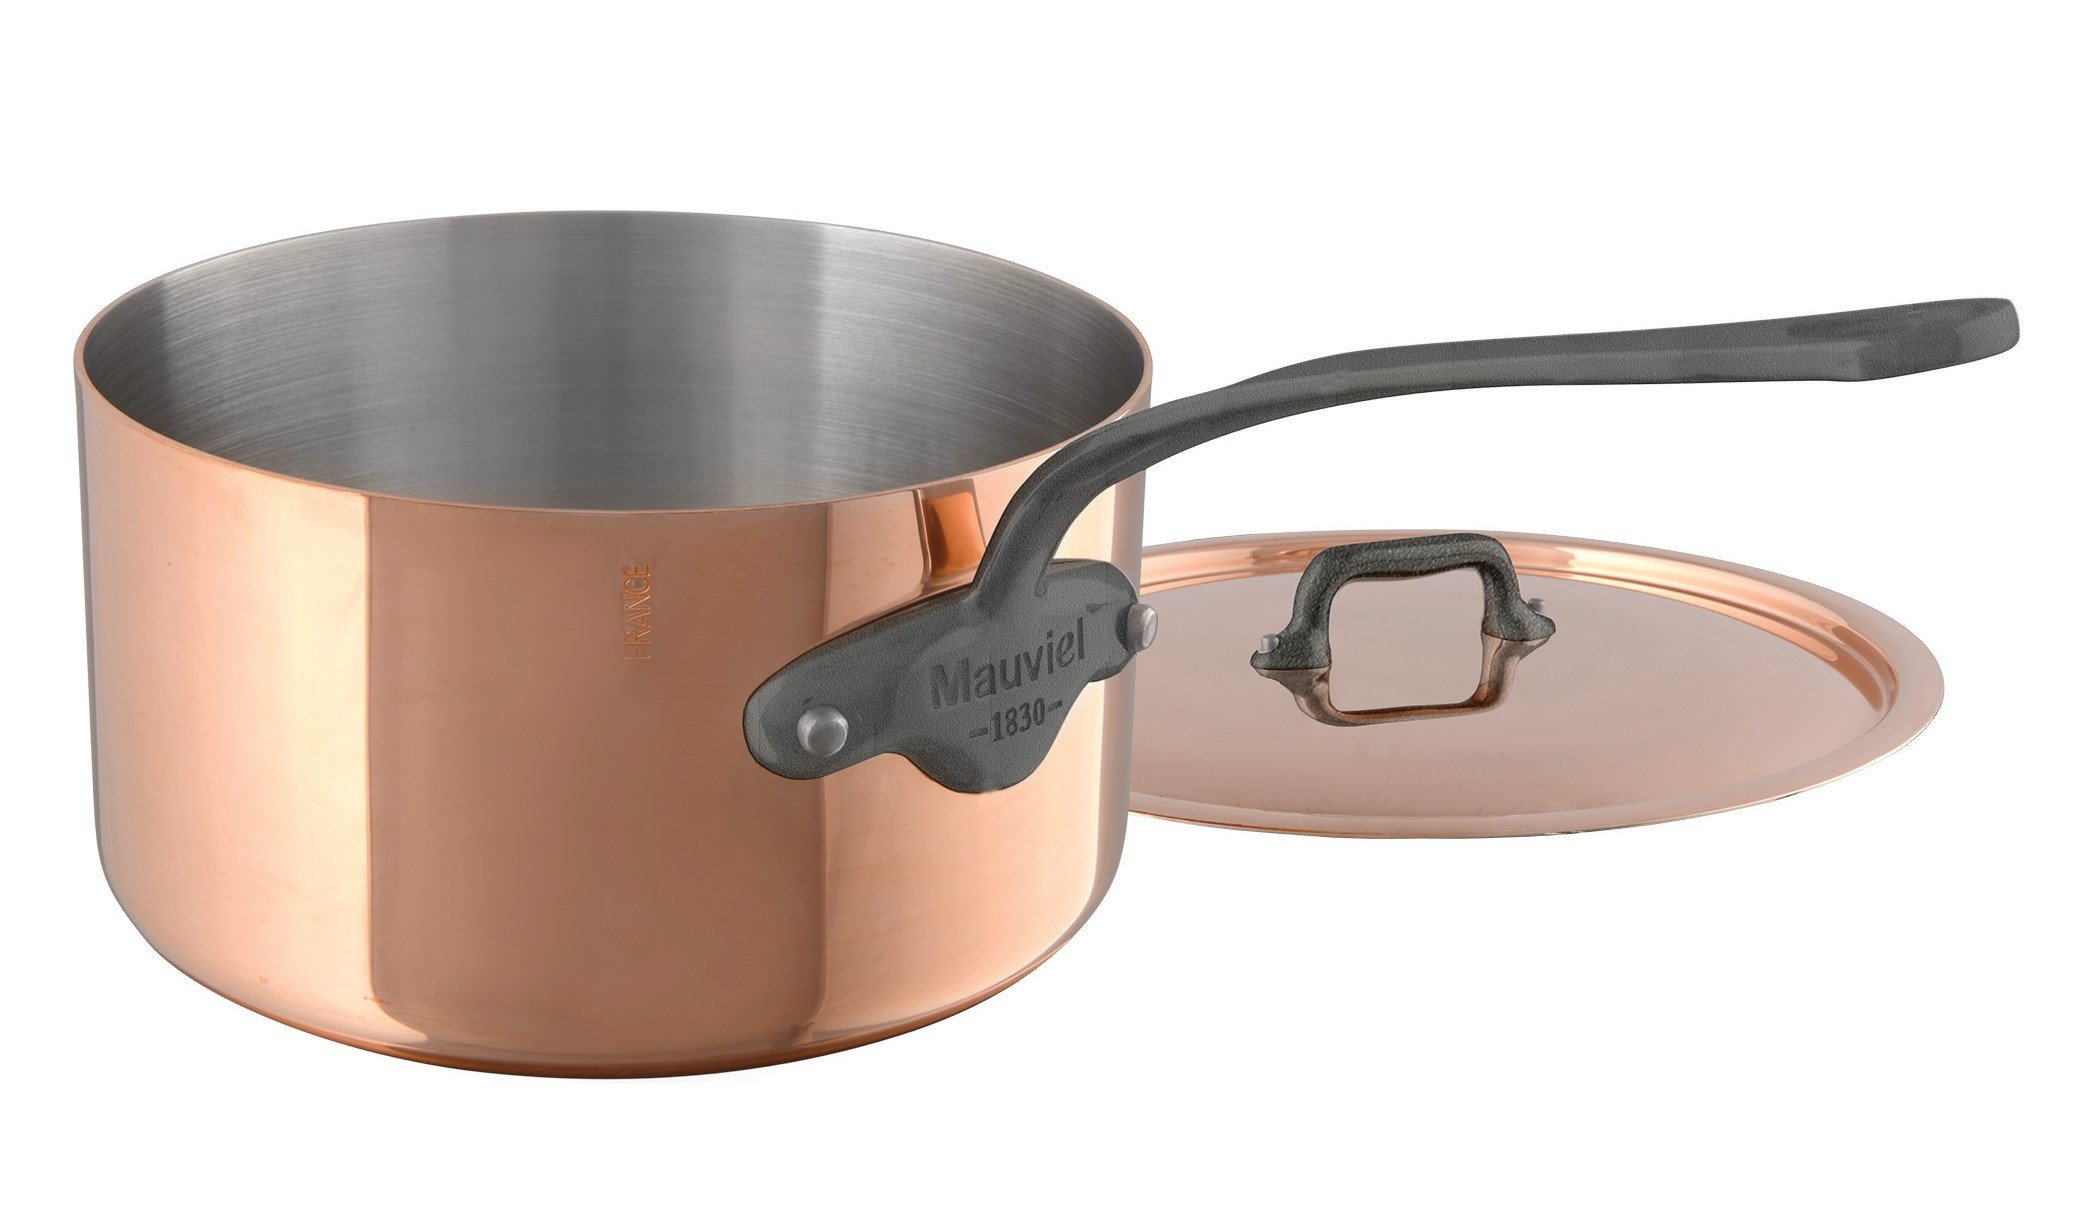 Mauviel M'Heritage M150C 6450.21 Copper Saucepan with Lid. 3.2L/3.1 quart 20cm/8'' with Cast Stainless Steel Iron Eletroplated  Handle